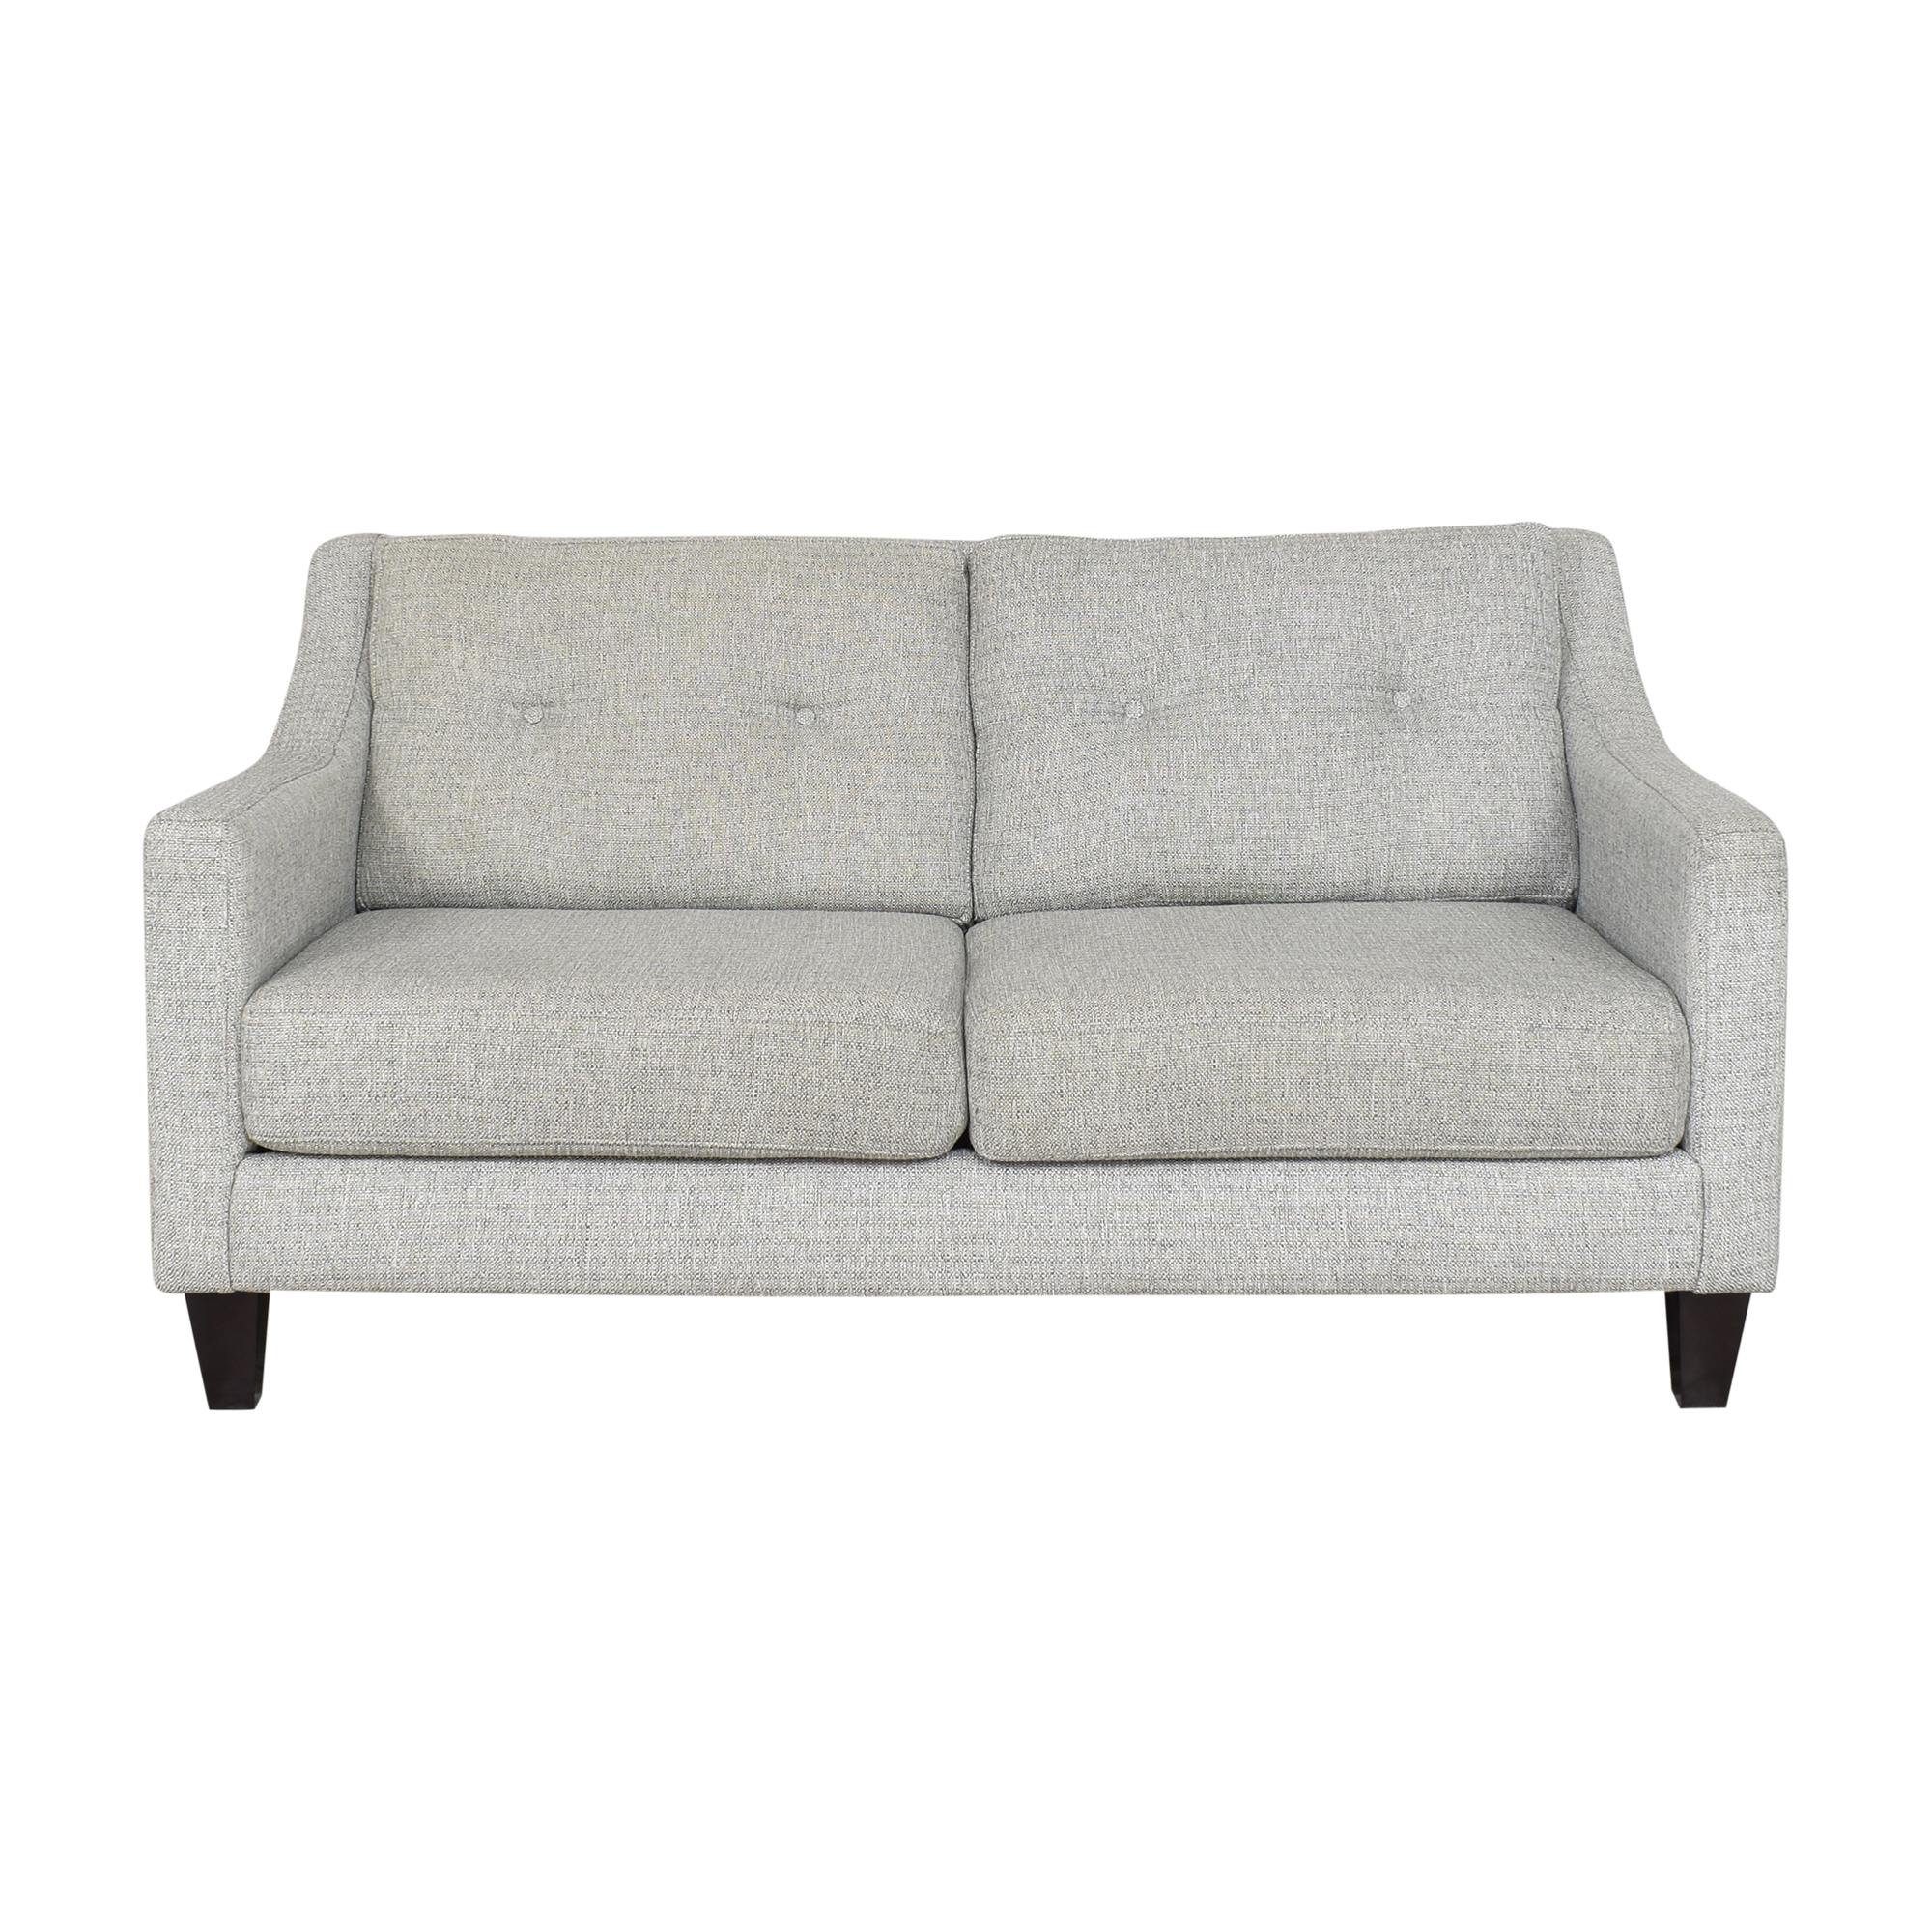 Raymour & Flanigan Raymour & Flanigan Kristoff Loveseat with Pillows dimensions